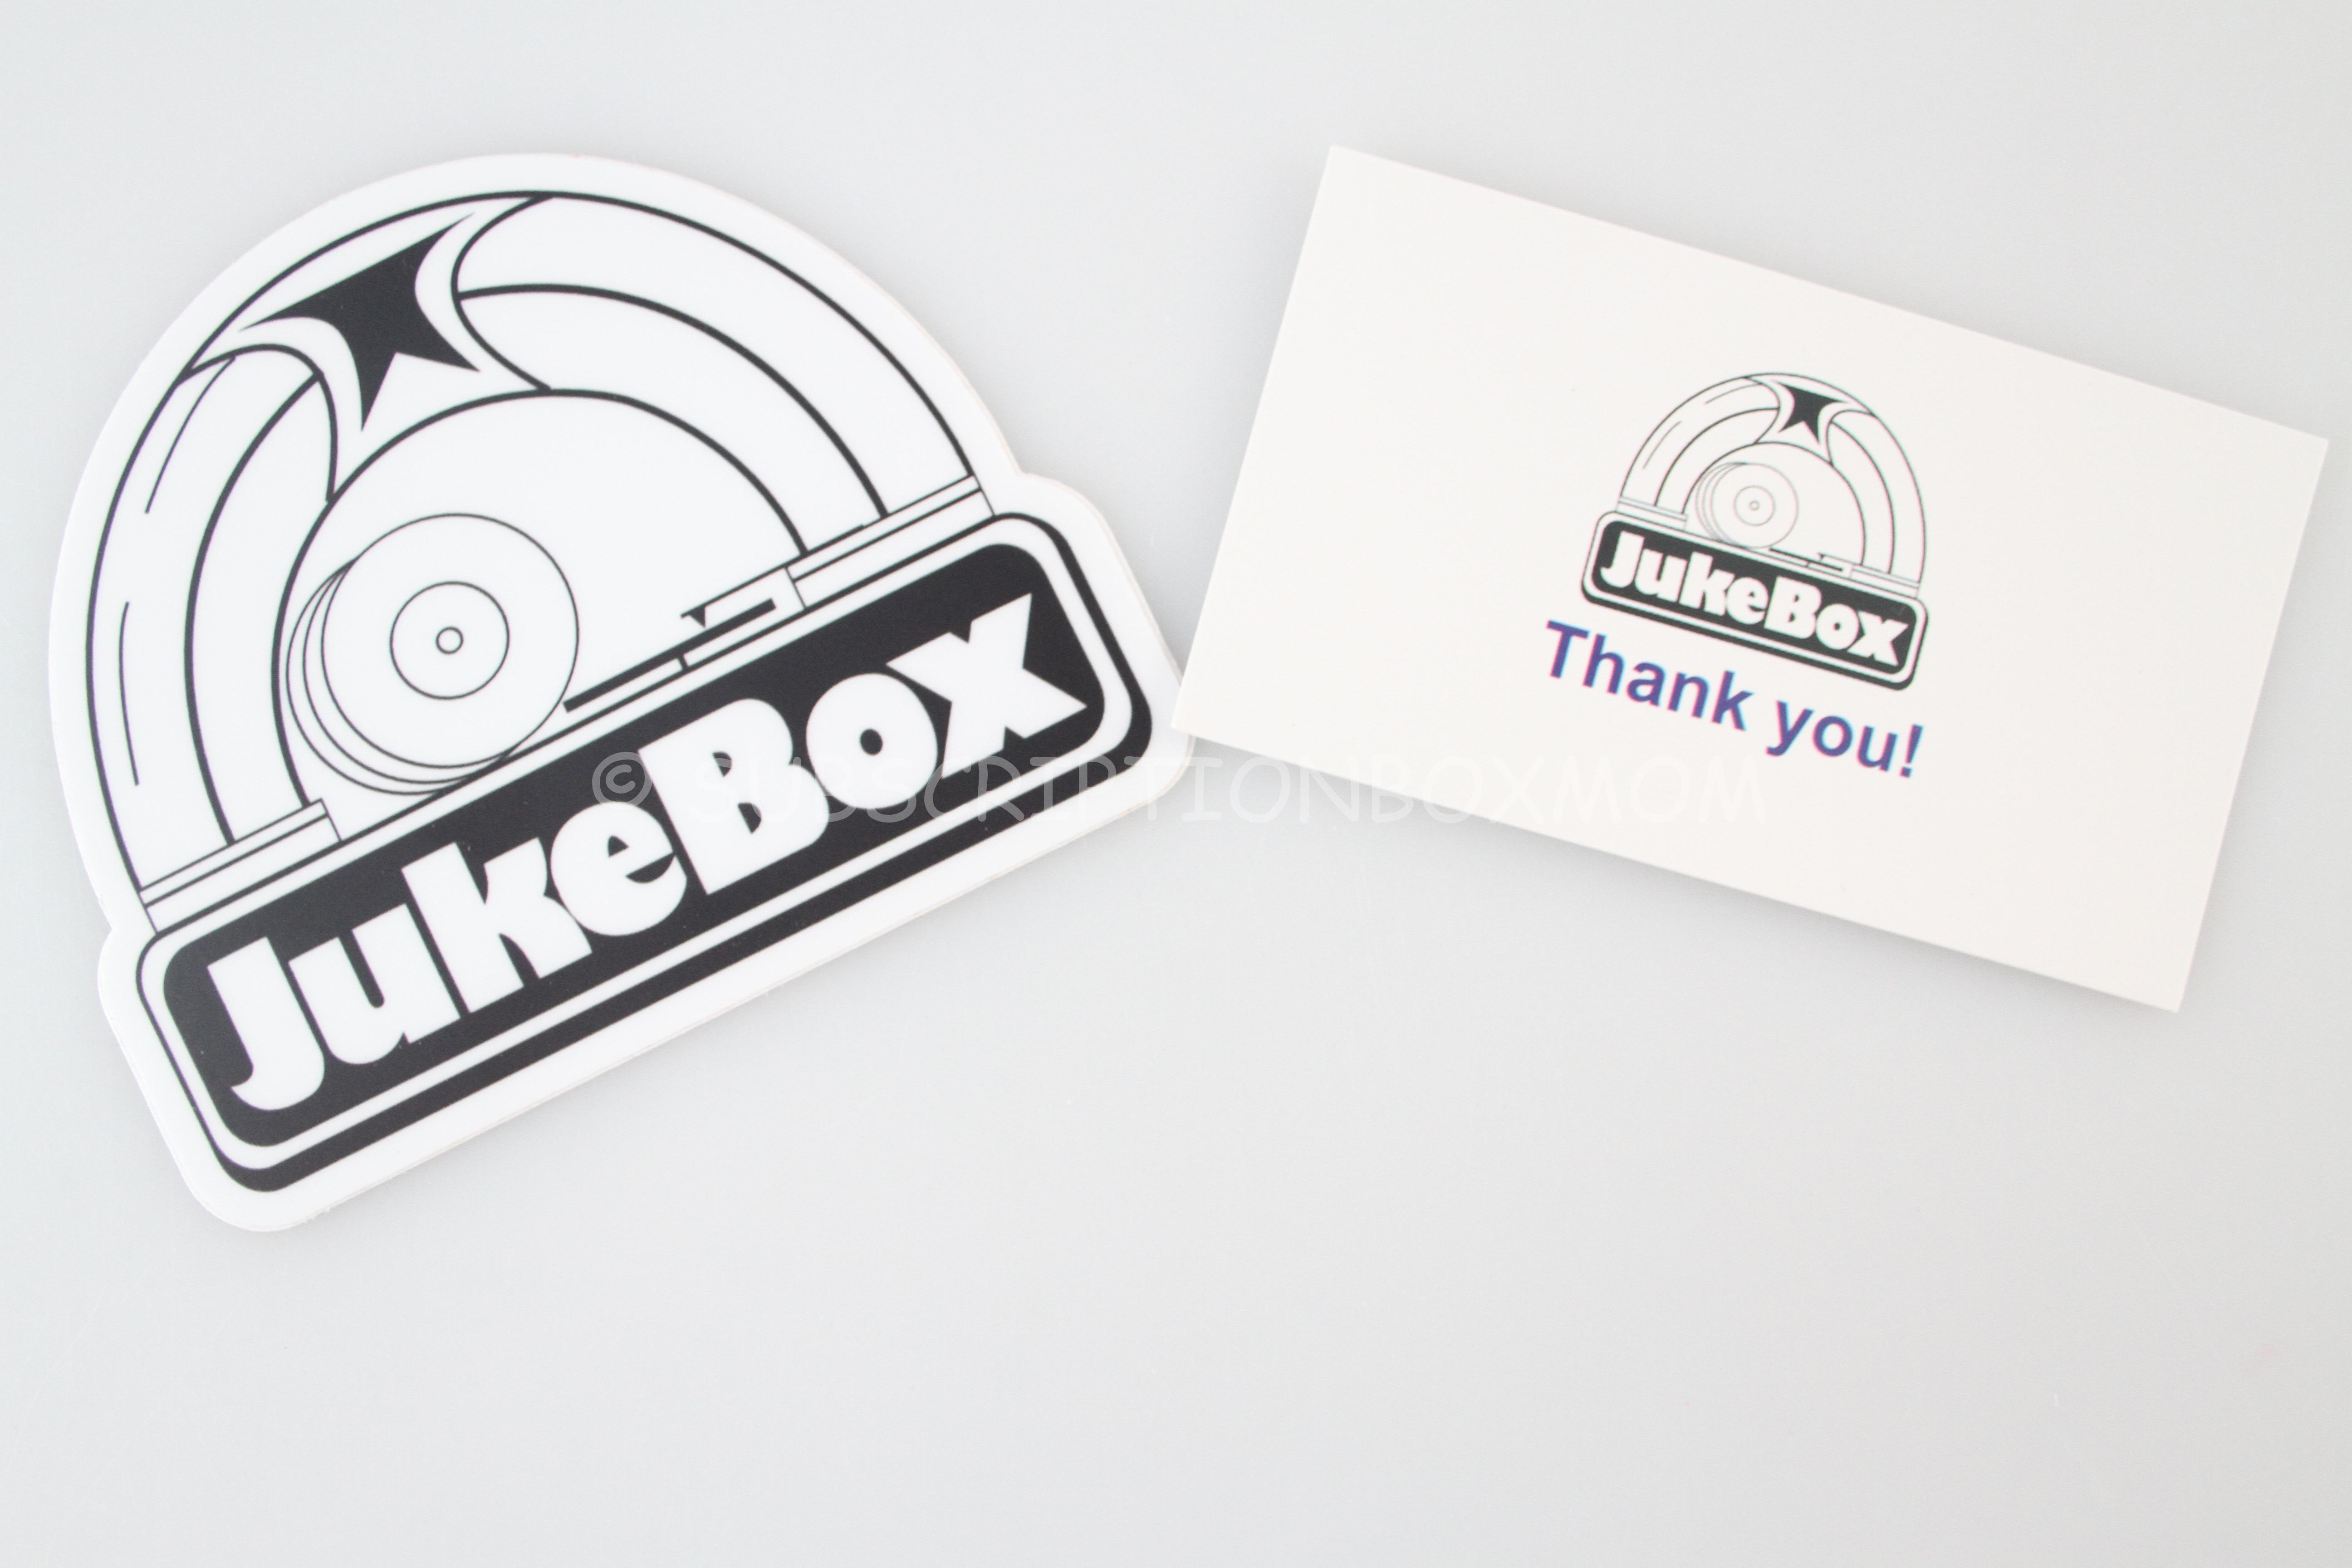 There was a jukebox sticker and a little business card with their twitter and facebook handles